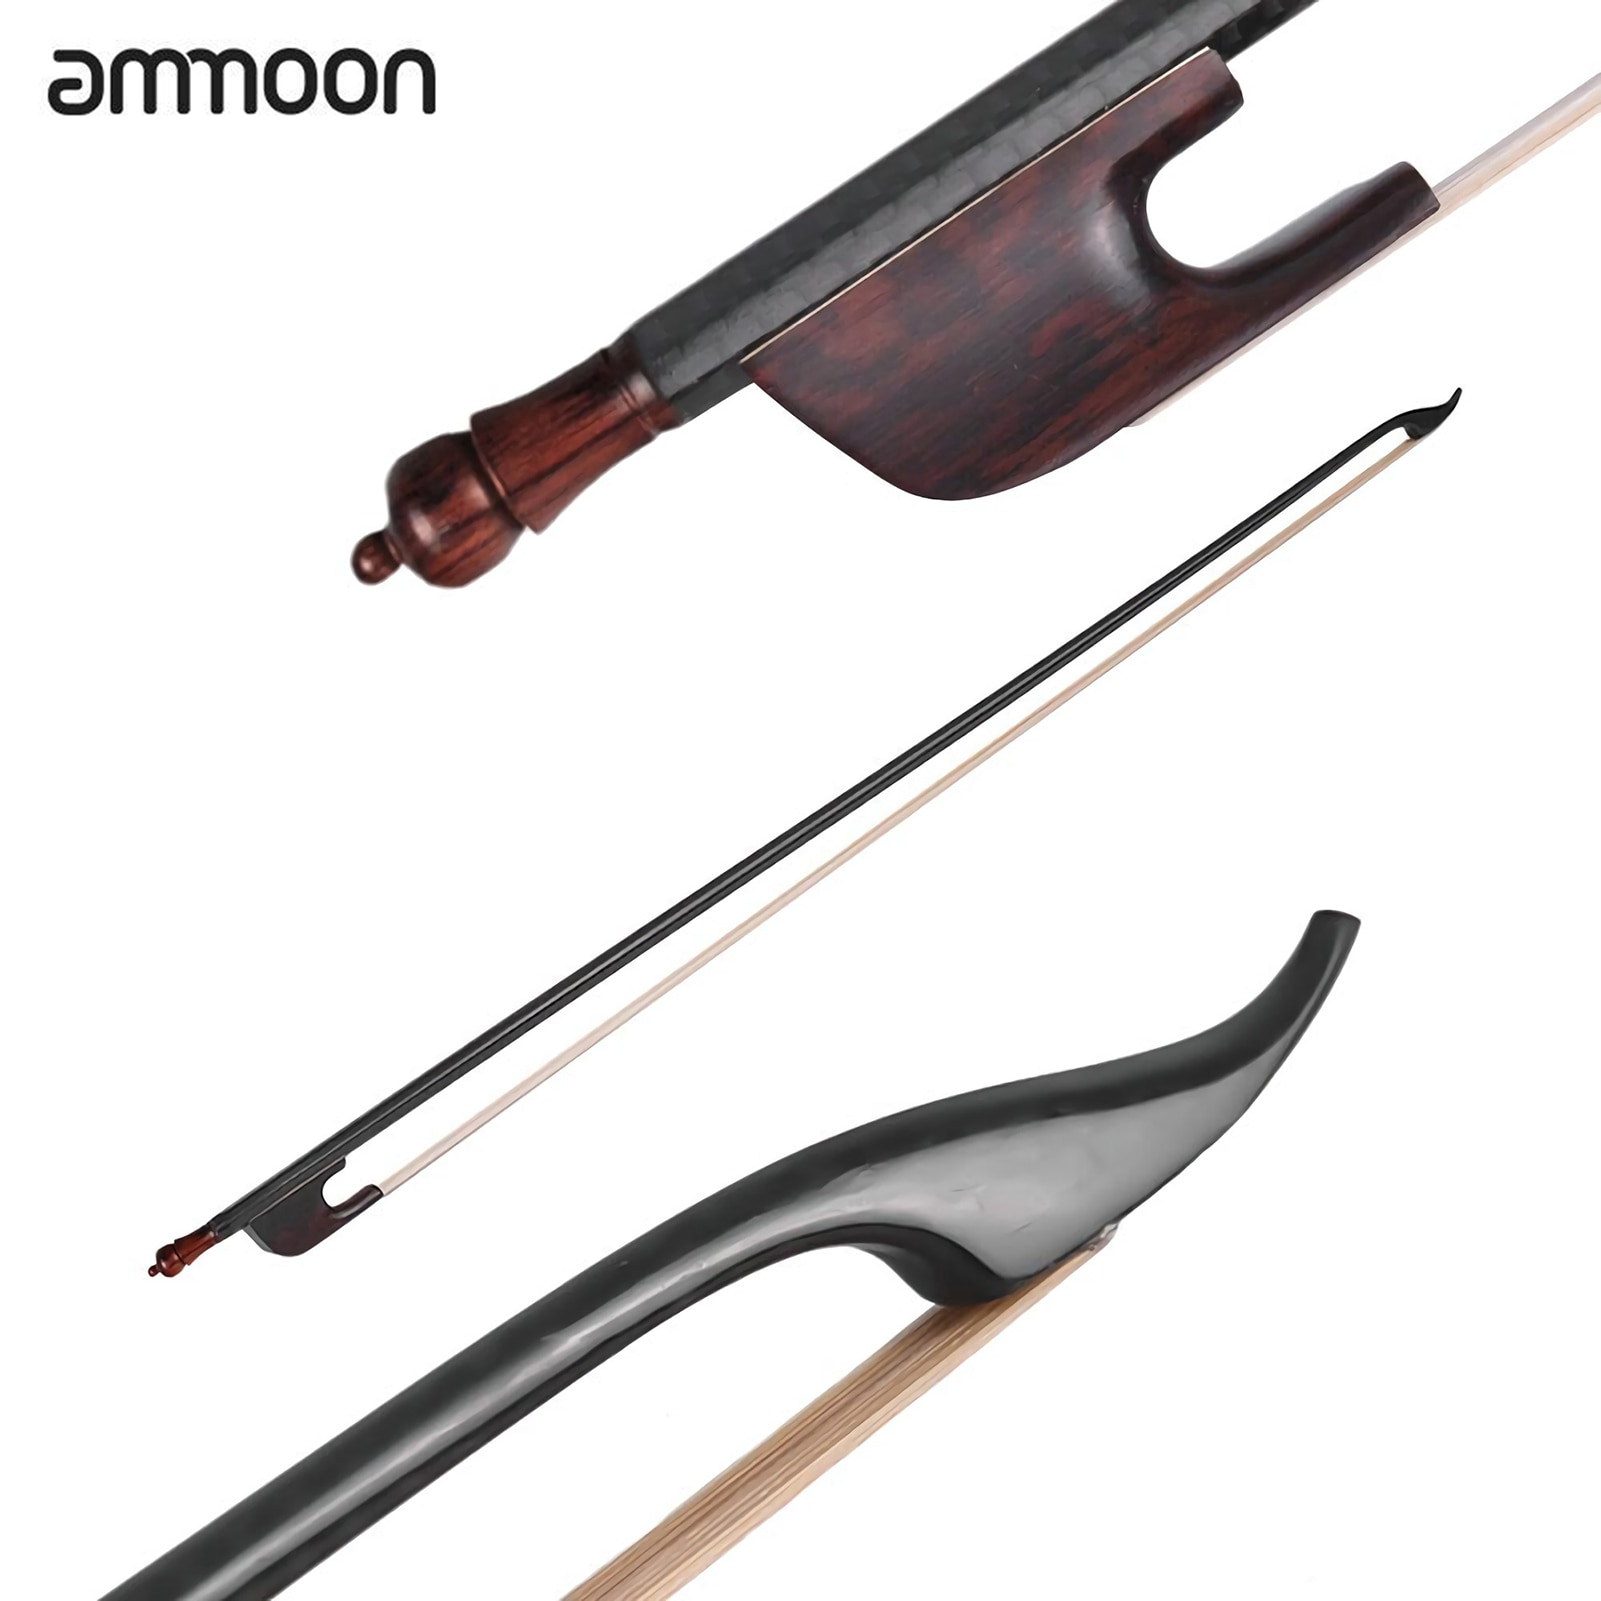 ammoon Violin Bow Baroque Style 4/4 Violin Fiddle Bow Carbon Fiber Round Well Balanced String Instrument Accessories